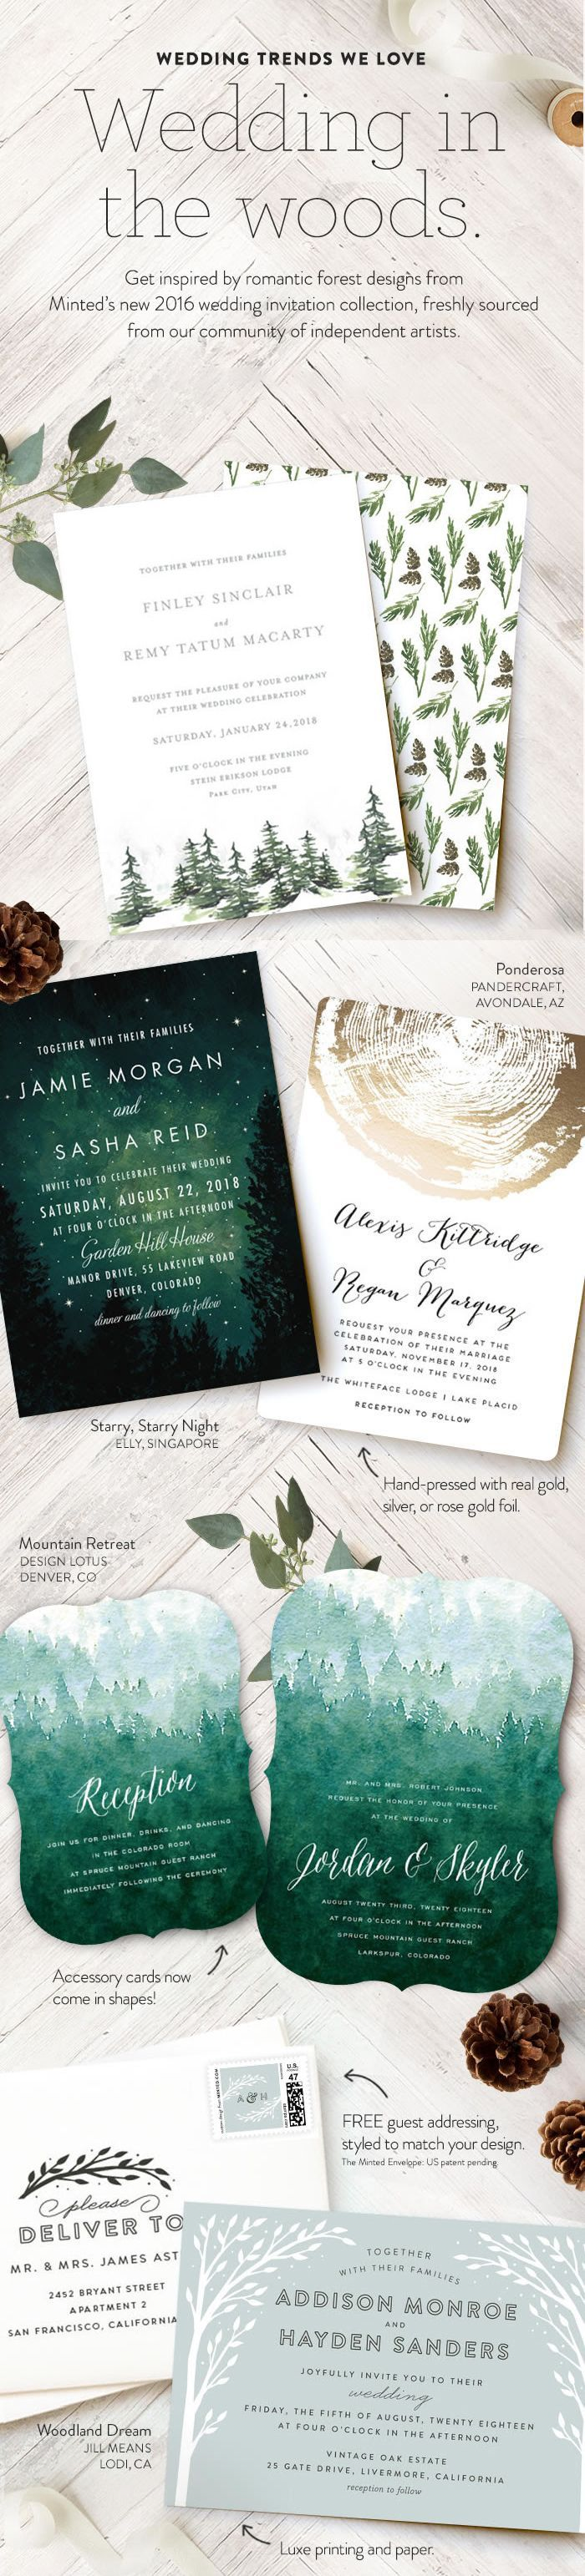 free wedding borders for invitations%0A SHOP TODAY  off save the dates and off forest wedding invitations by  independent artists on Minted  Enjoy unlimited custom design changes and  FREE recipient